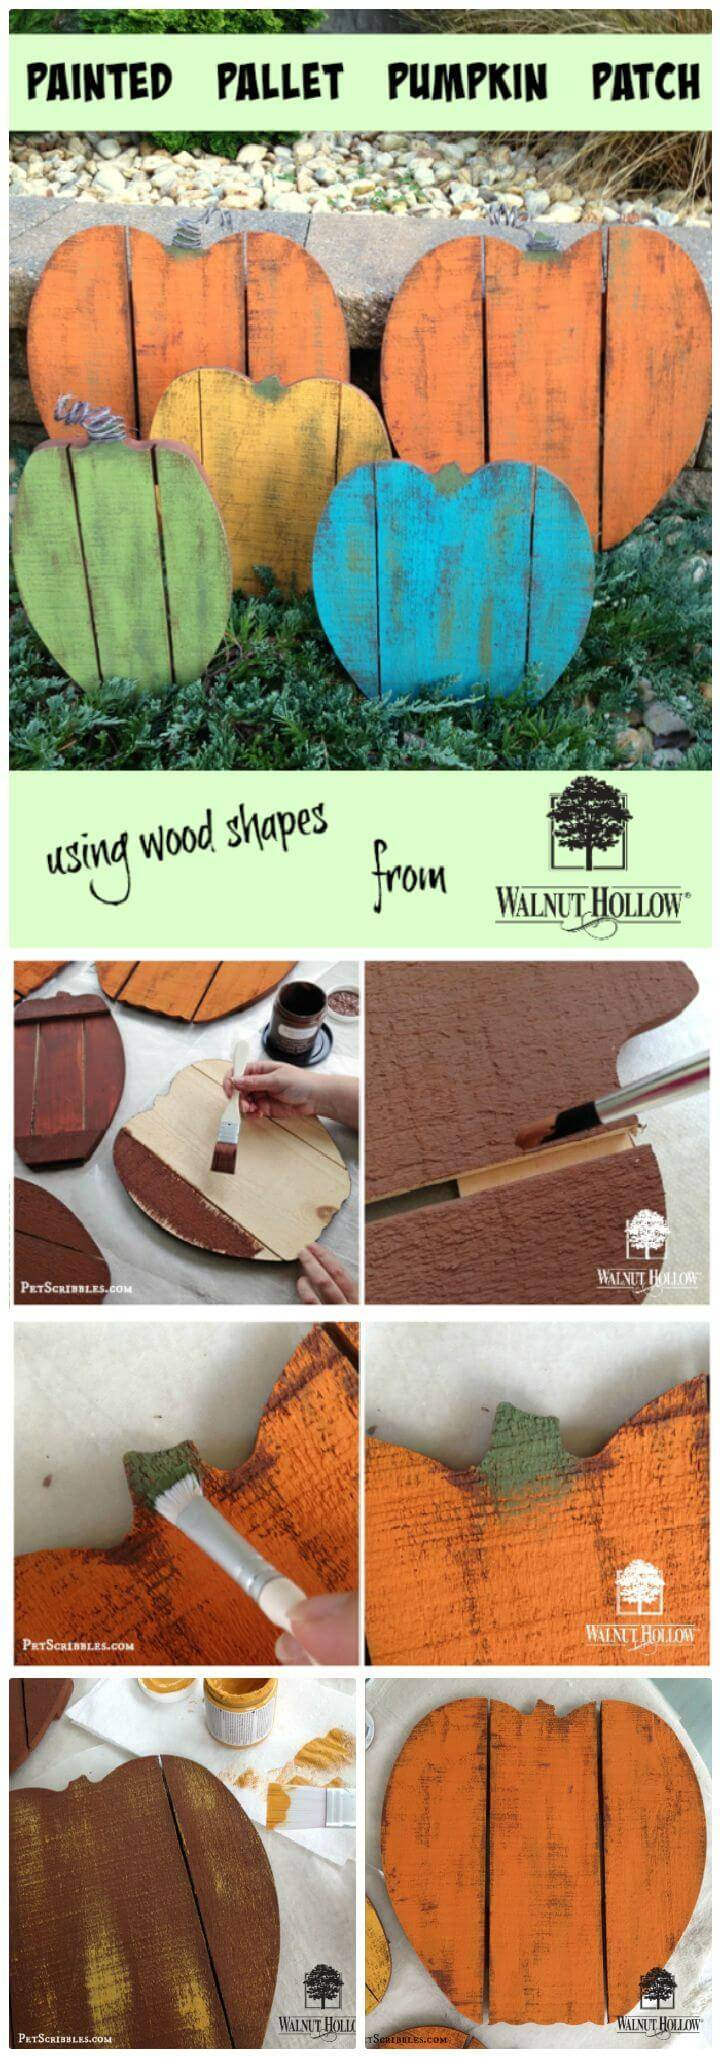 DIY Cutest Painted Pallet Wood Pumpkin Patch Ever